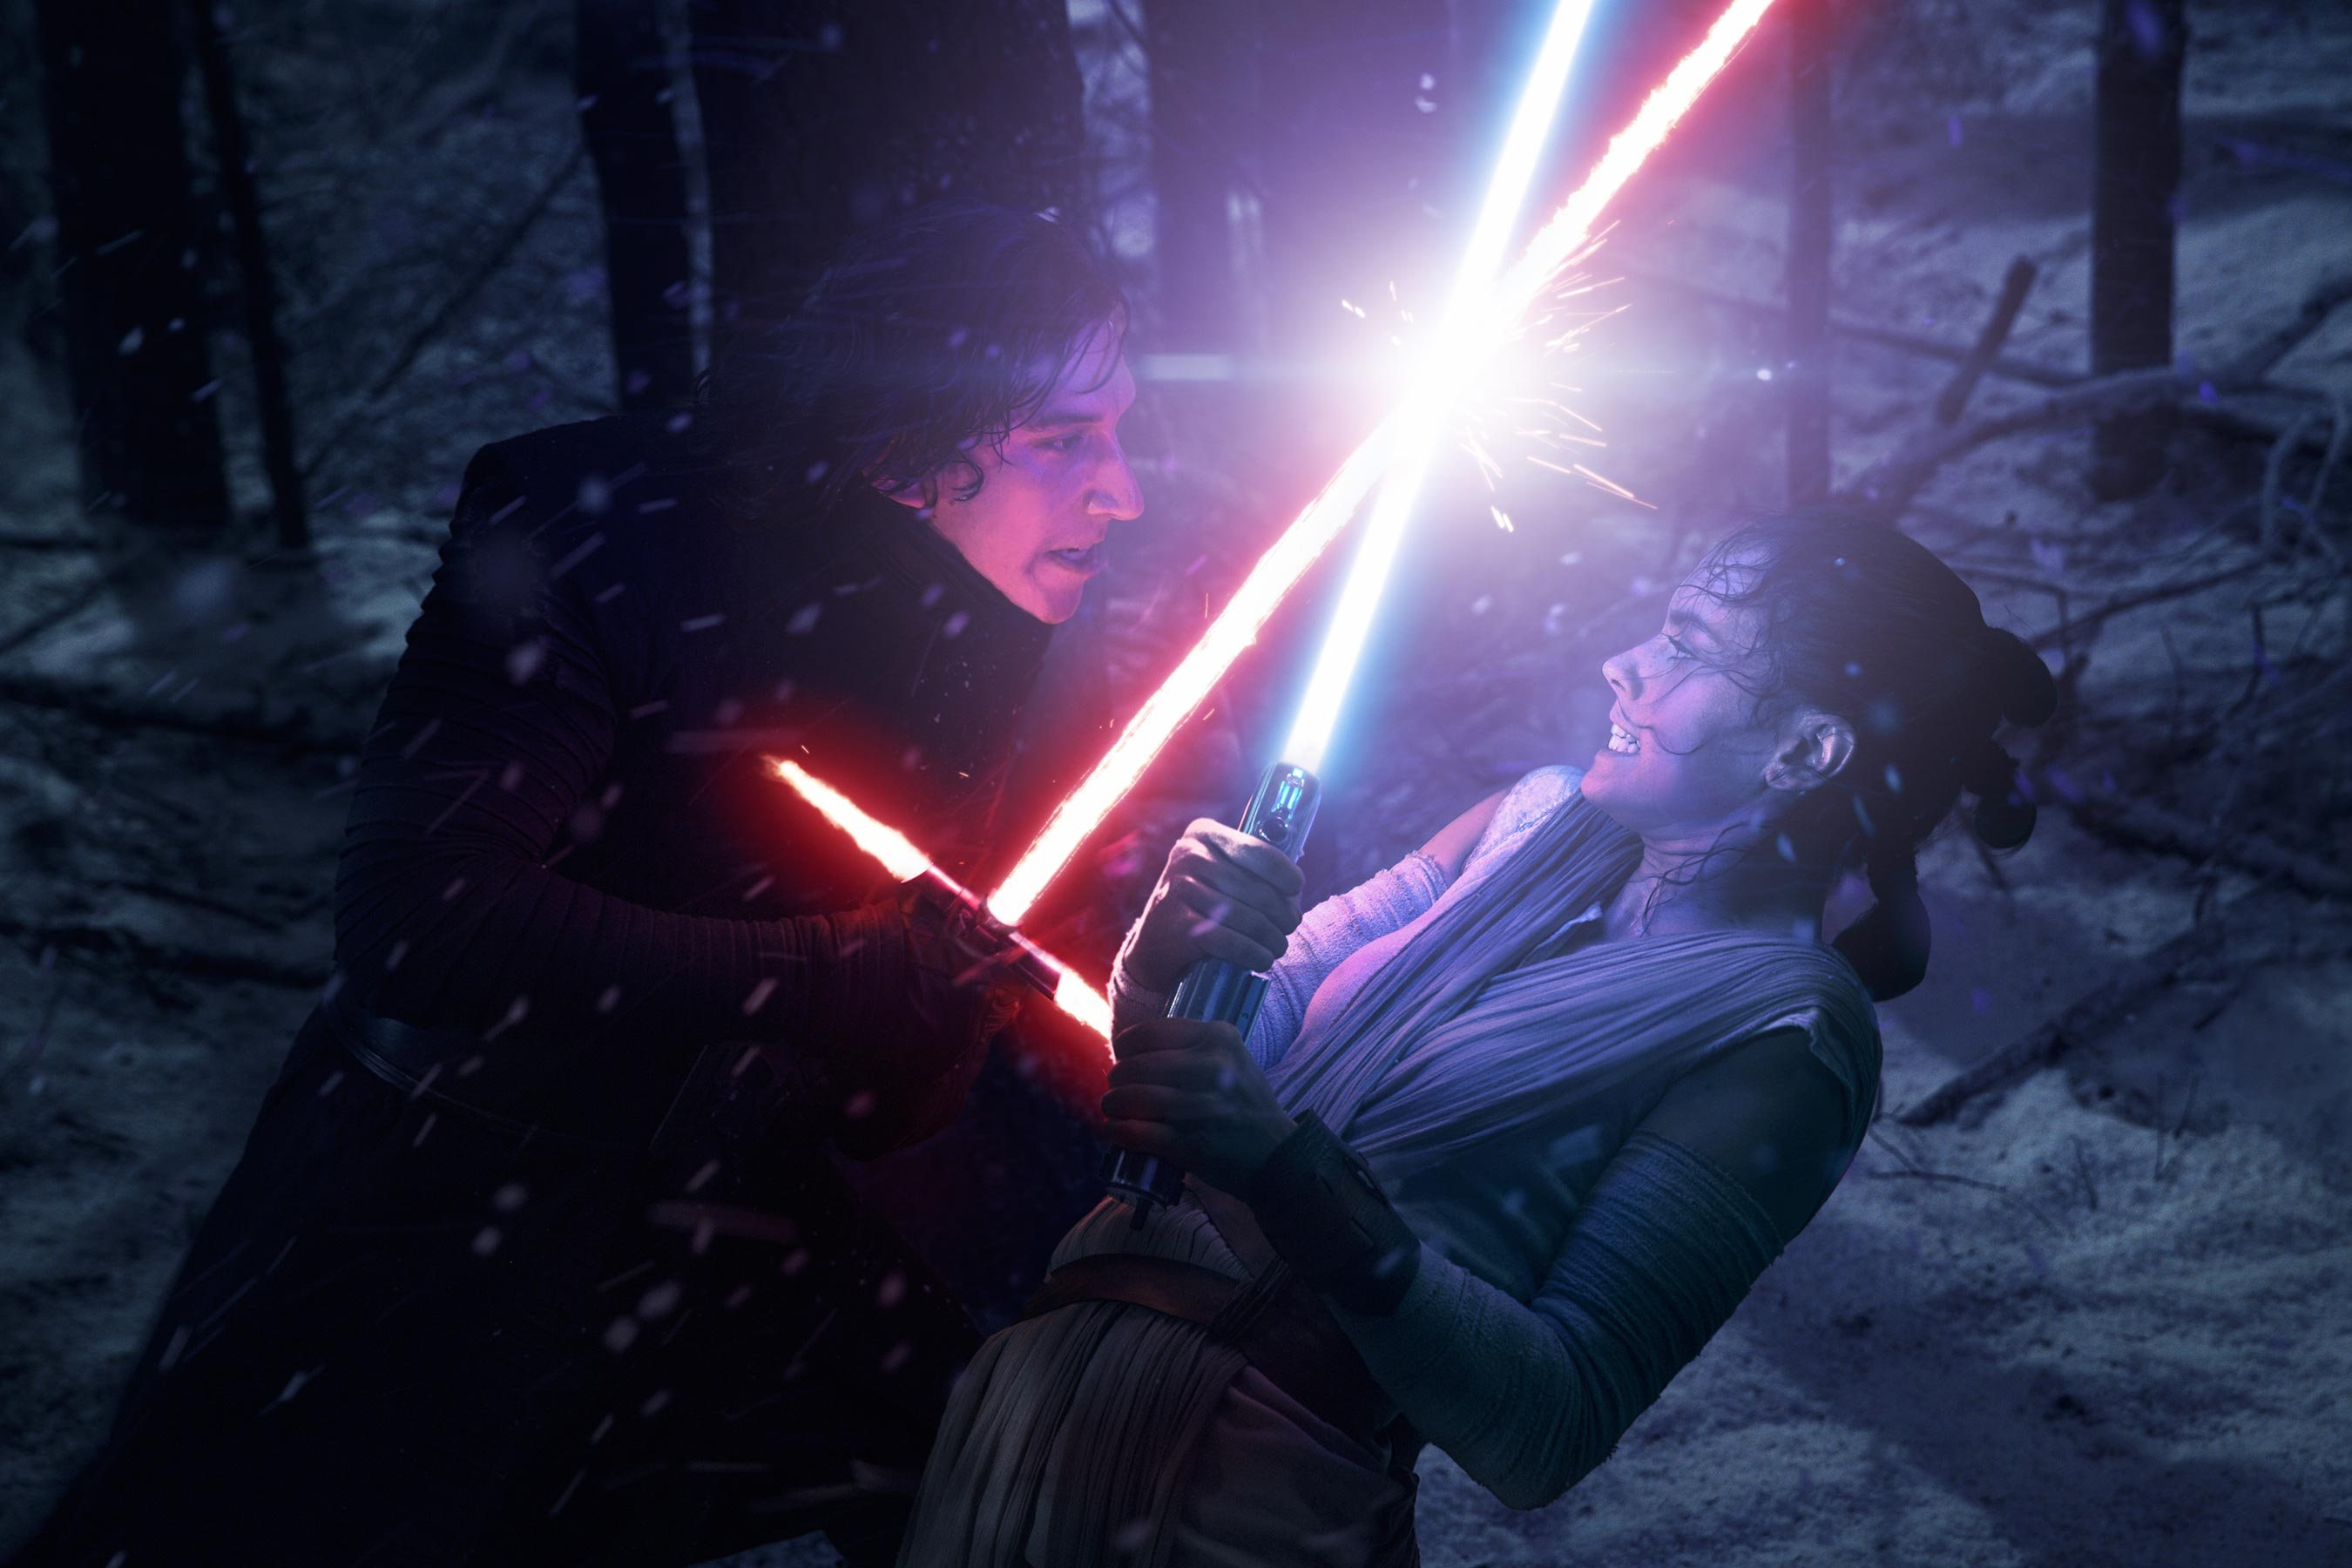 Best fantasy films of the 2010s - The Force Awakens